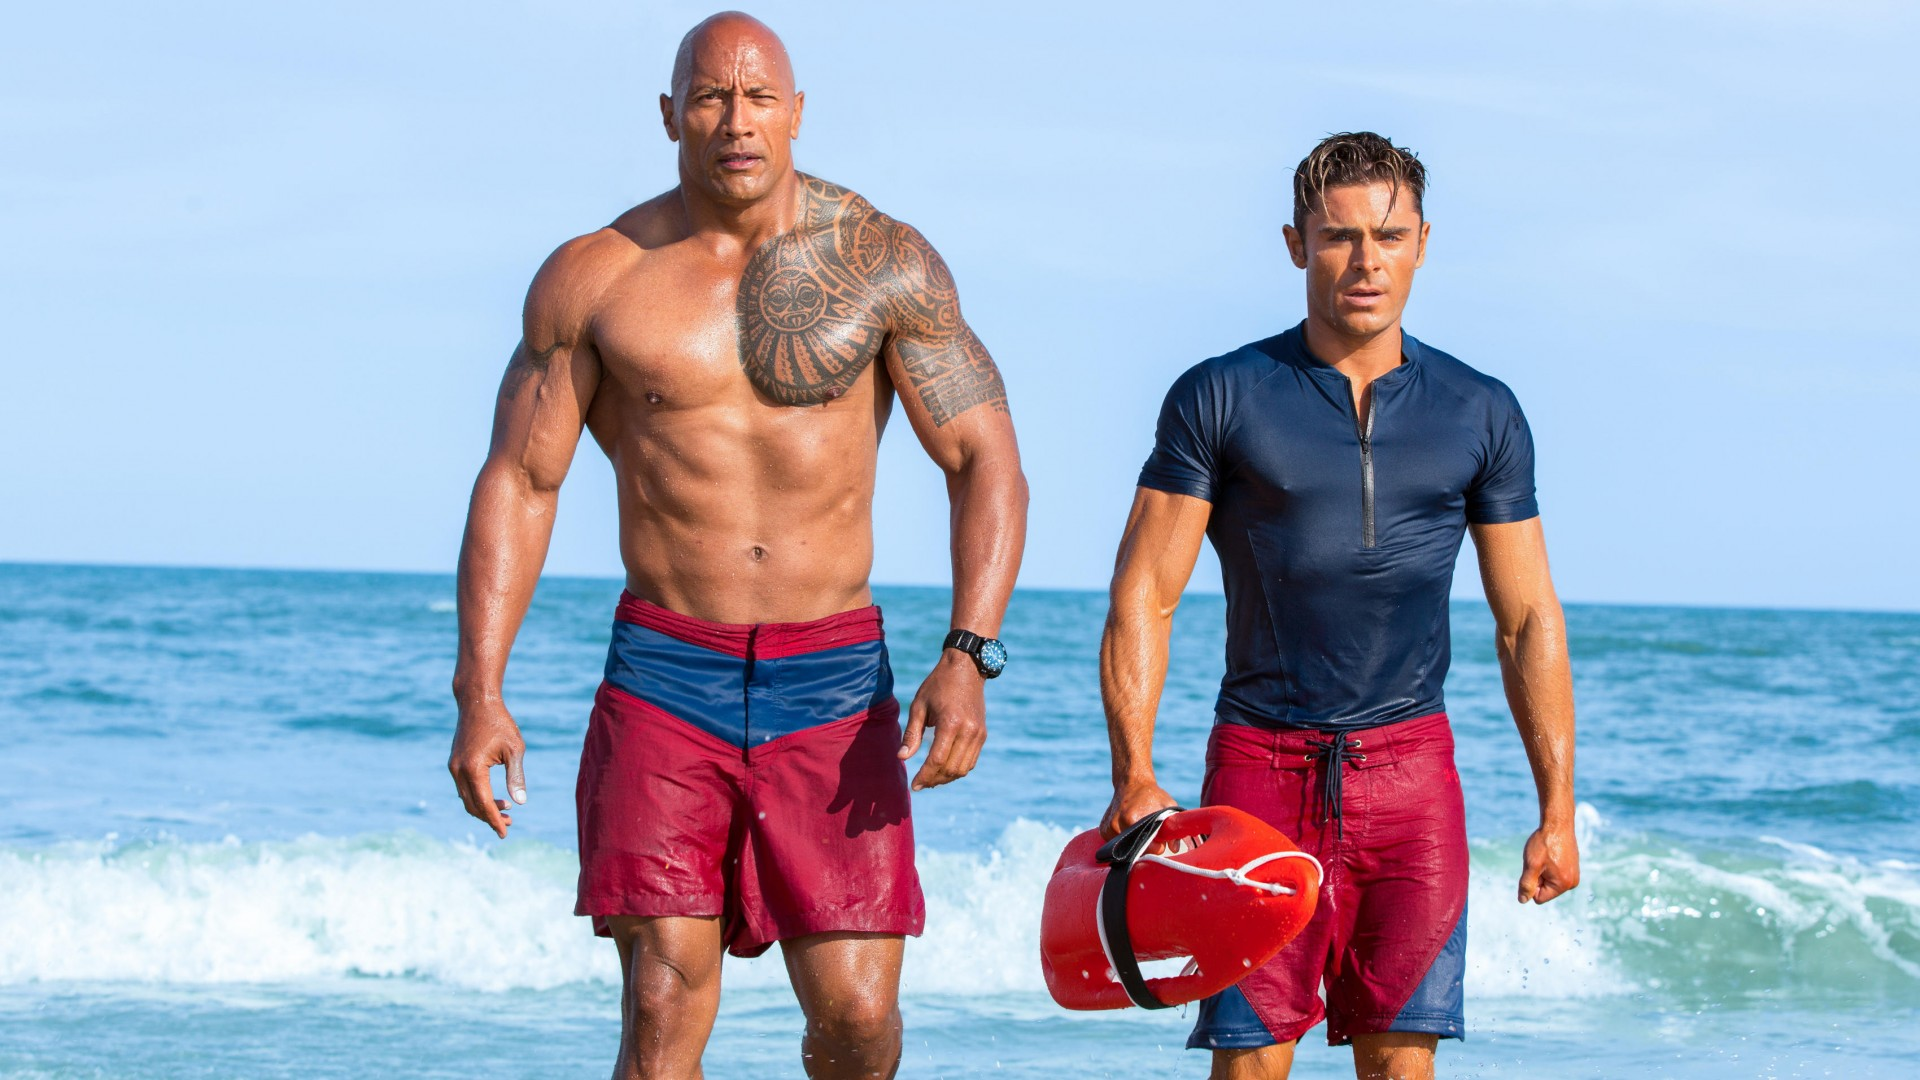 Fast and furious star Dwayne 'The Rock' Johnson on his new film The Fate of The Furious, Baywatch and being the highest paid actor in the world.